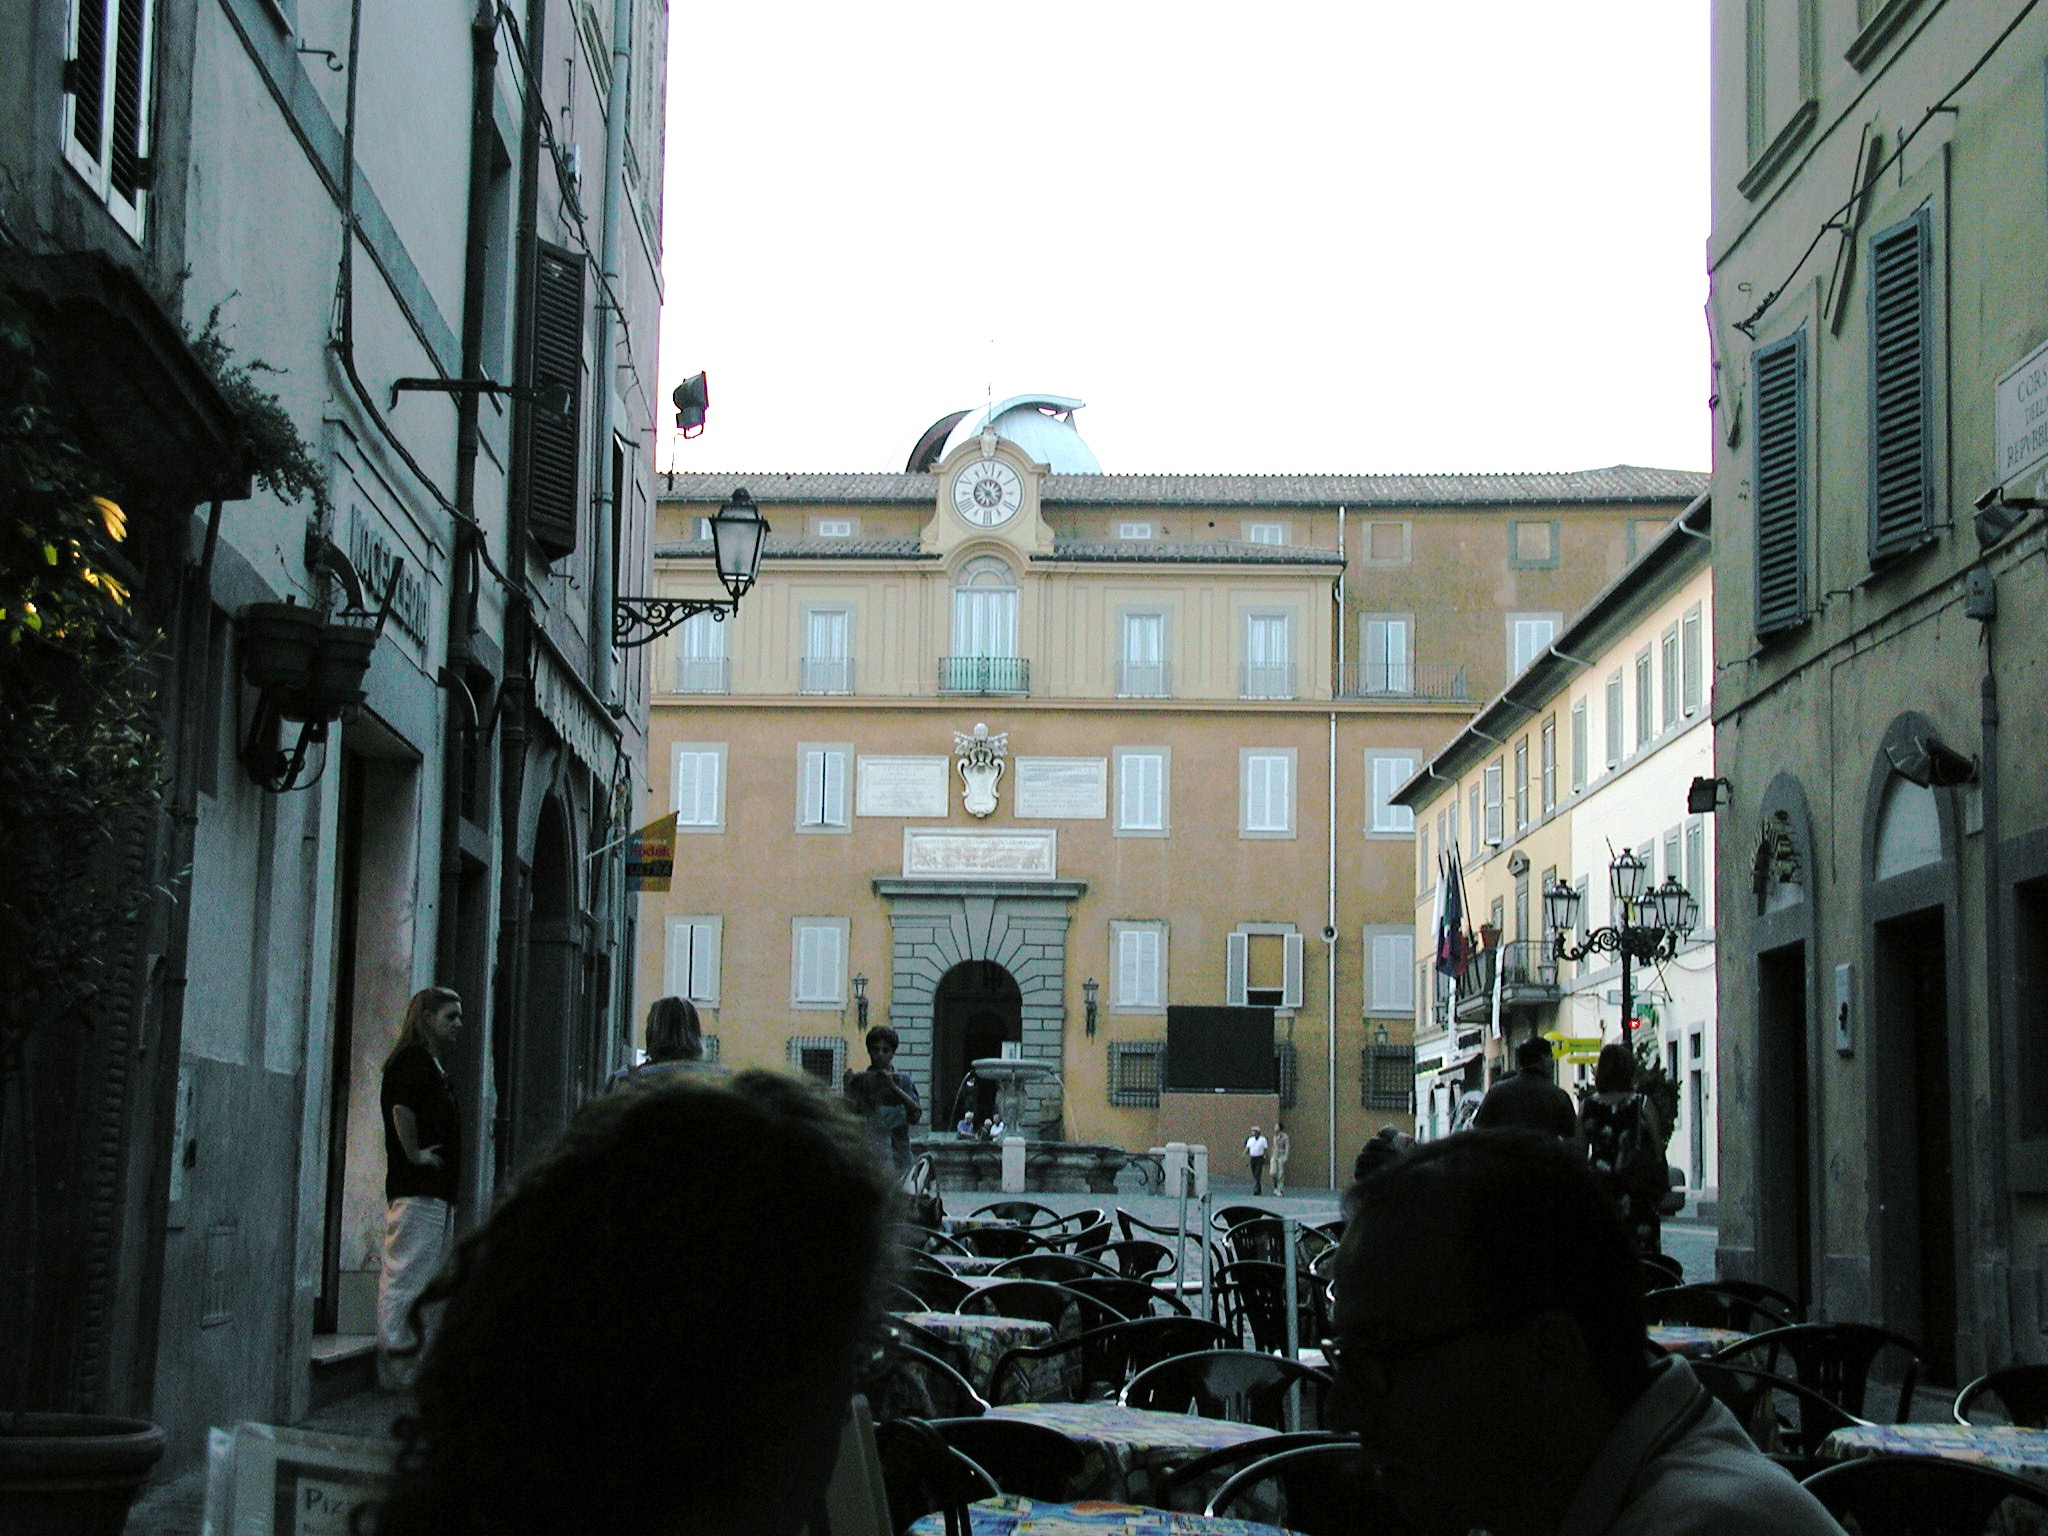 View of the Papal Palace from Castel Gandolfo